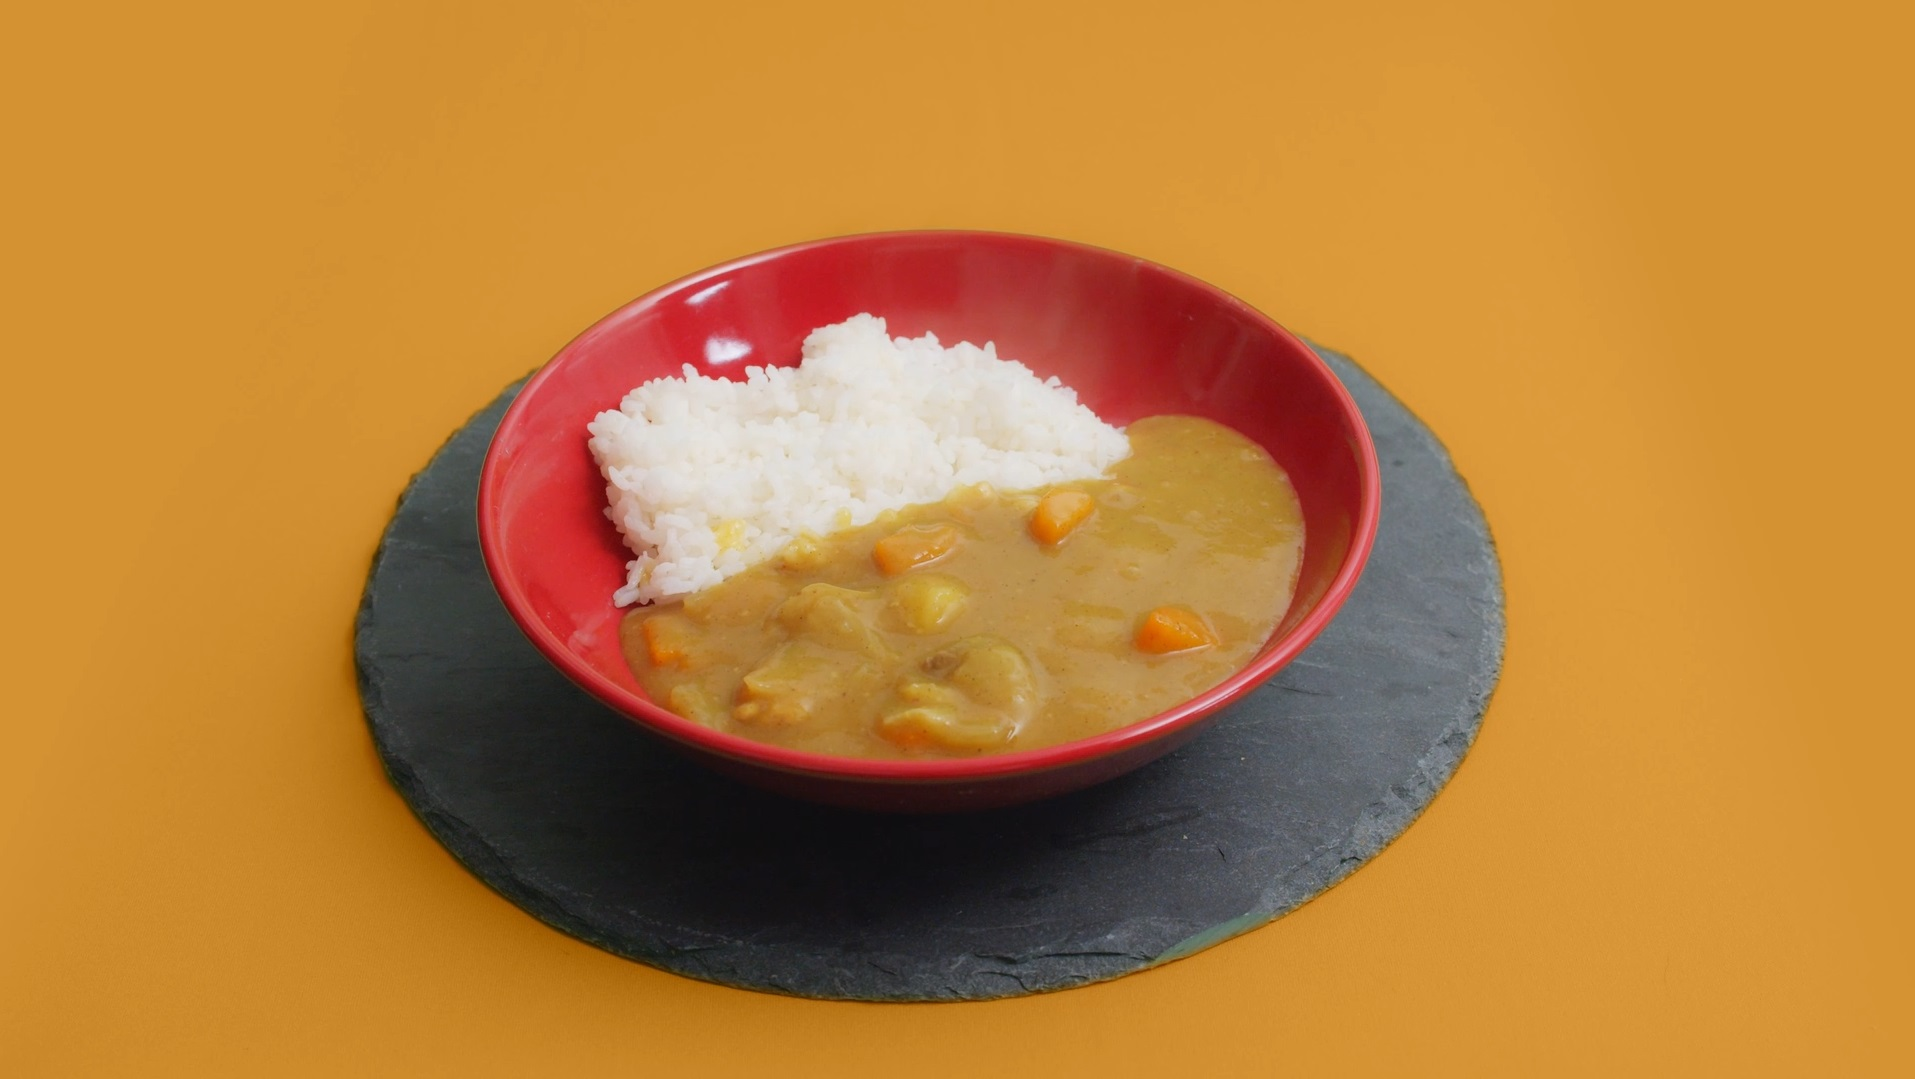 How to Prepare a Japanese Curry?